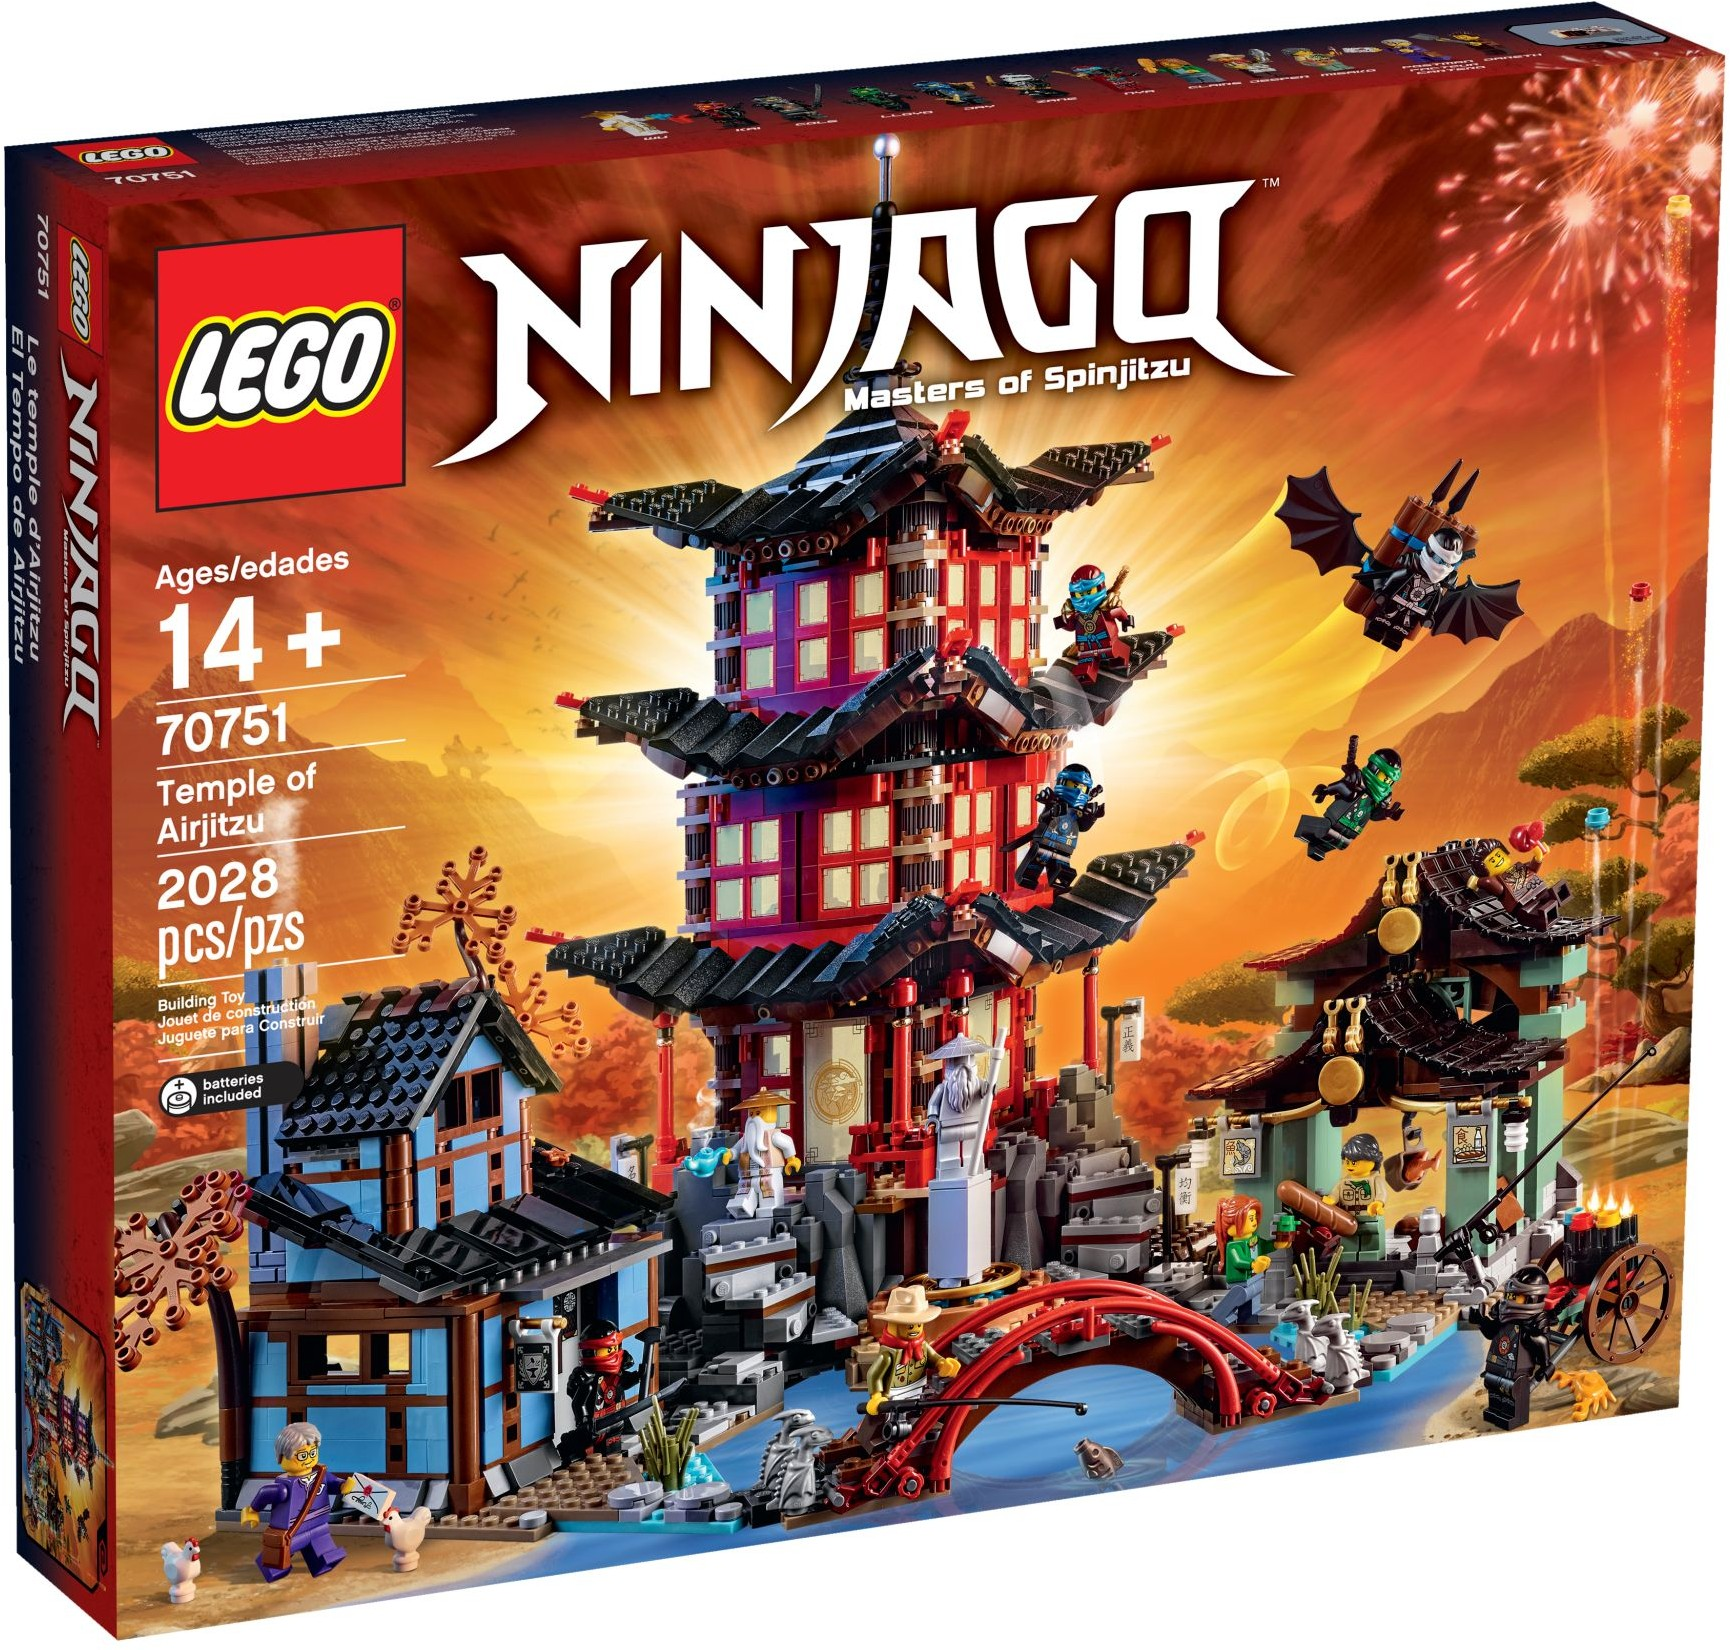 LEGO 70751 - Ninjago - Temple of Airjitzu